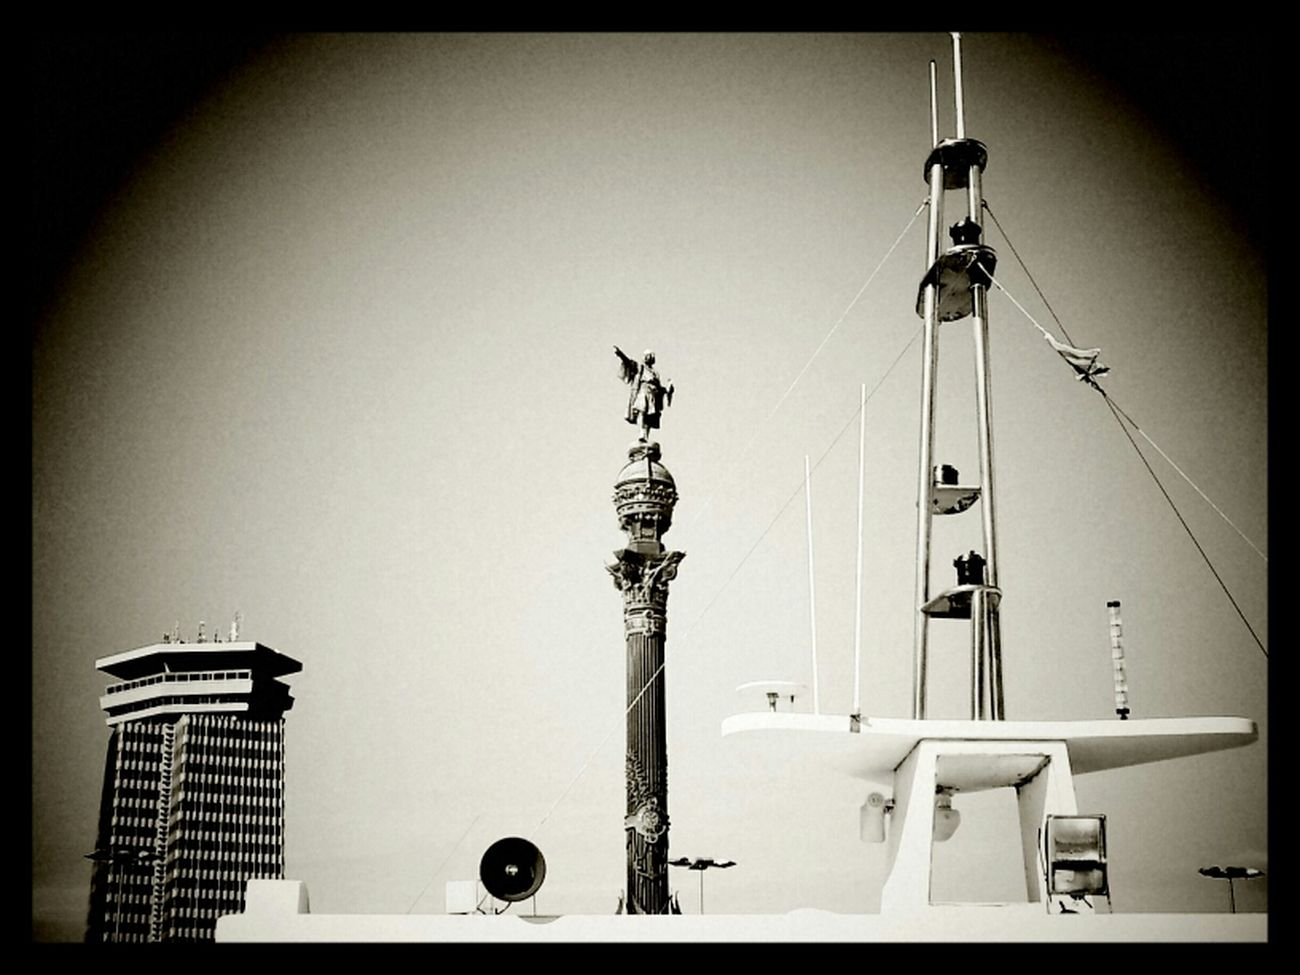 Torre, Colom i vaixell / Tower, Columbus' statue and boat. Black And White Bw Cities Blackandwhite